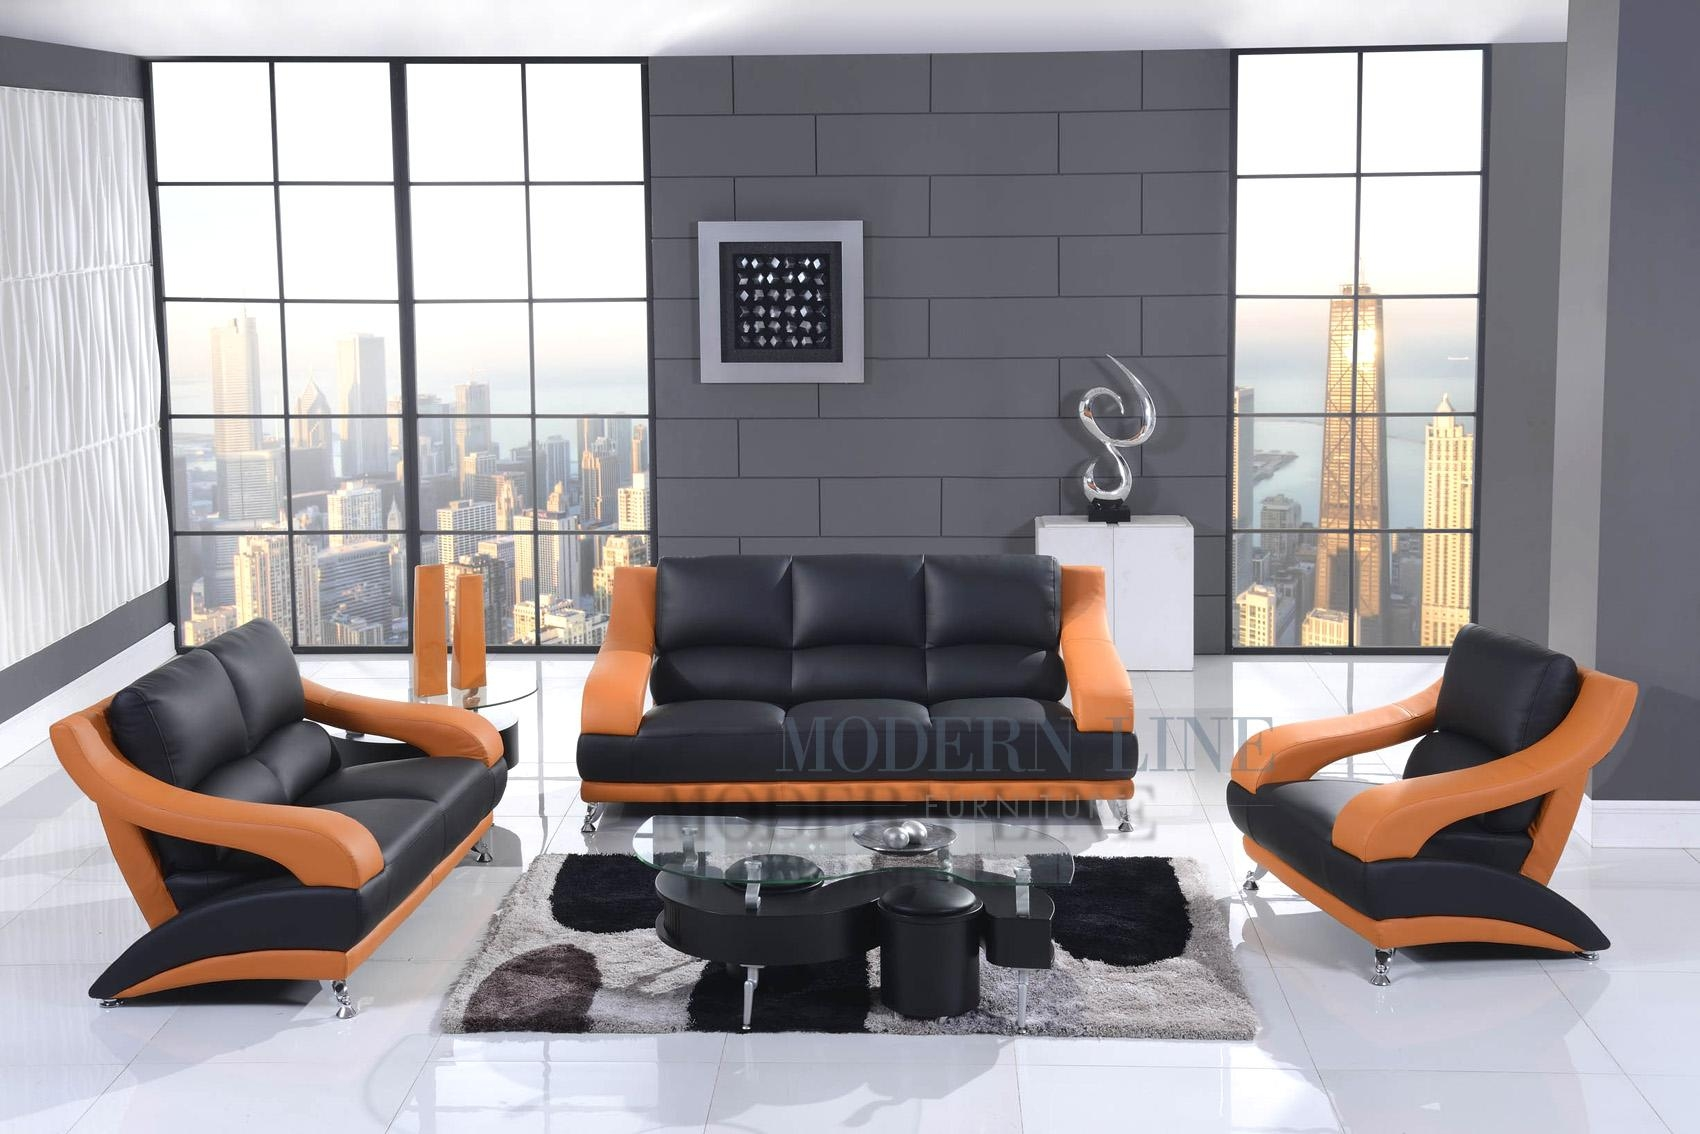 Modern Line Furniture – Commercial Furniture – Custom Made Pertaining To Orange Sofa Chairs (View 4 of 20)